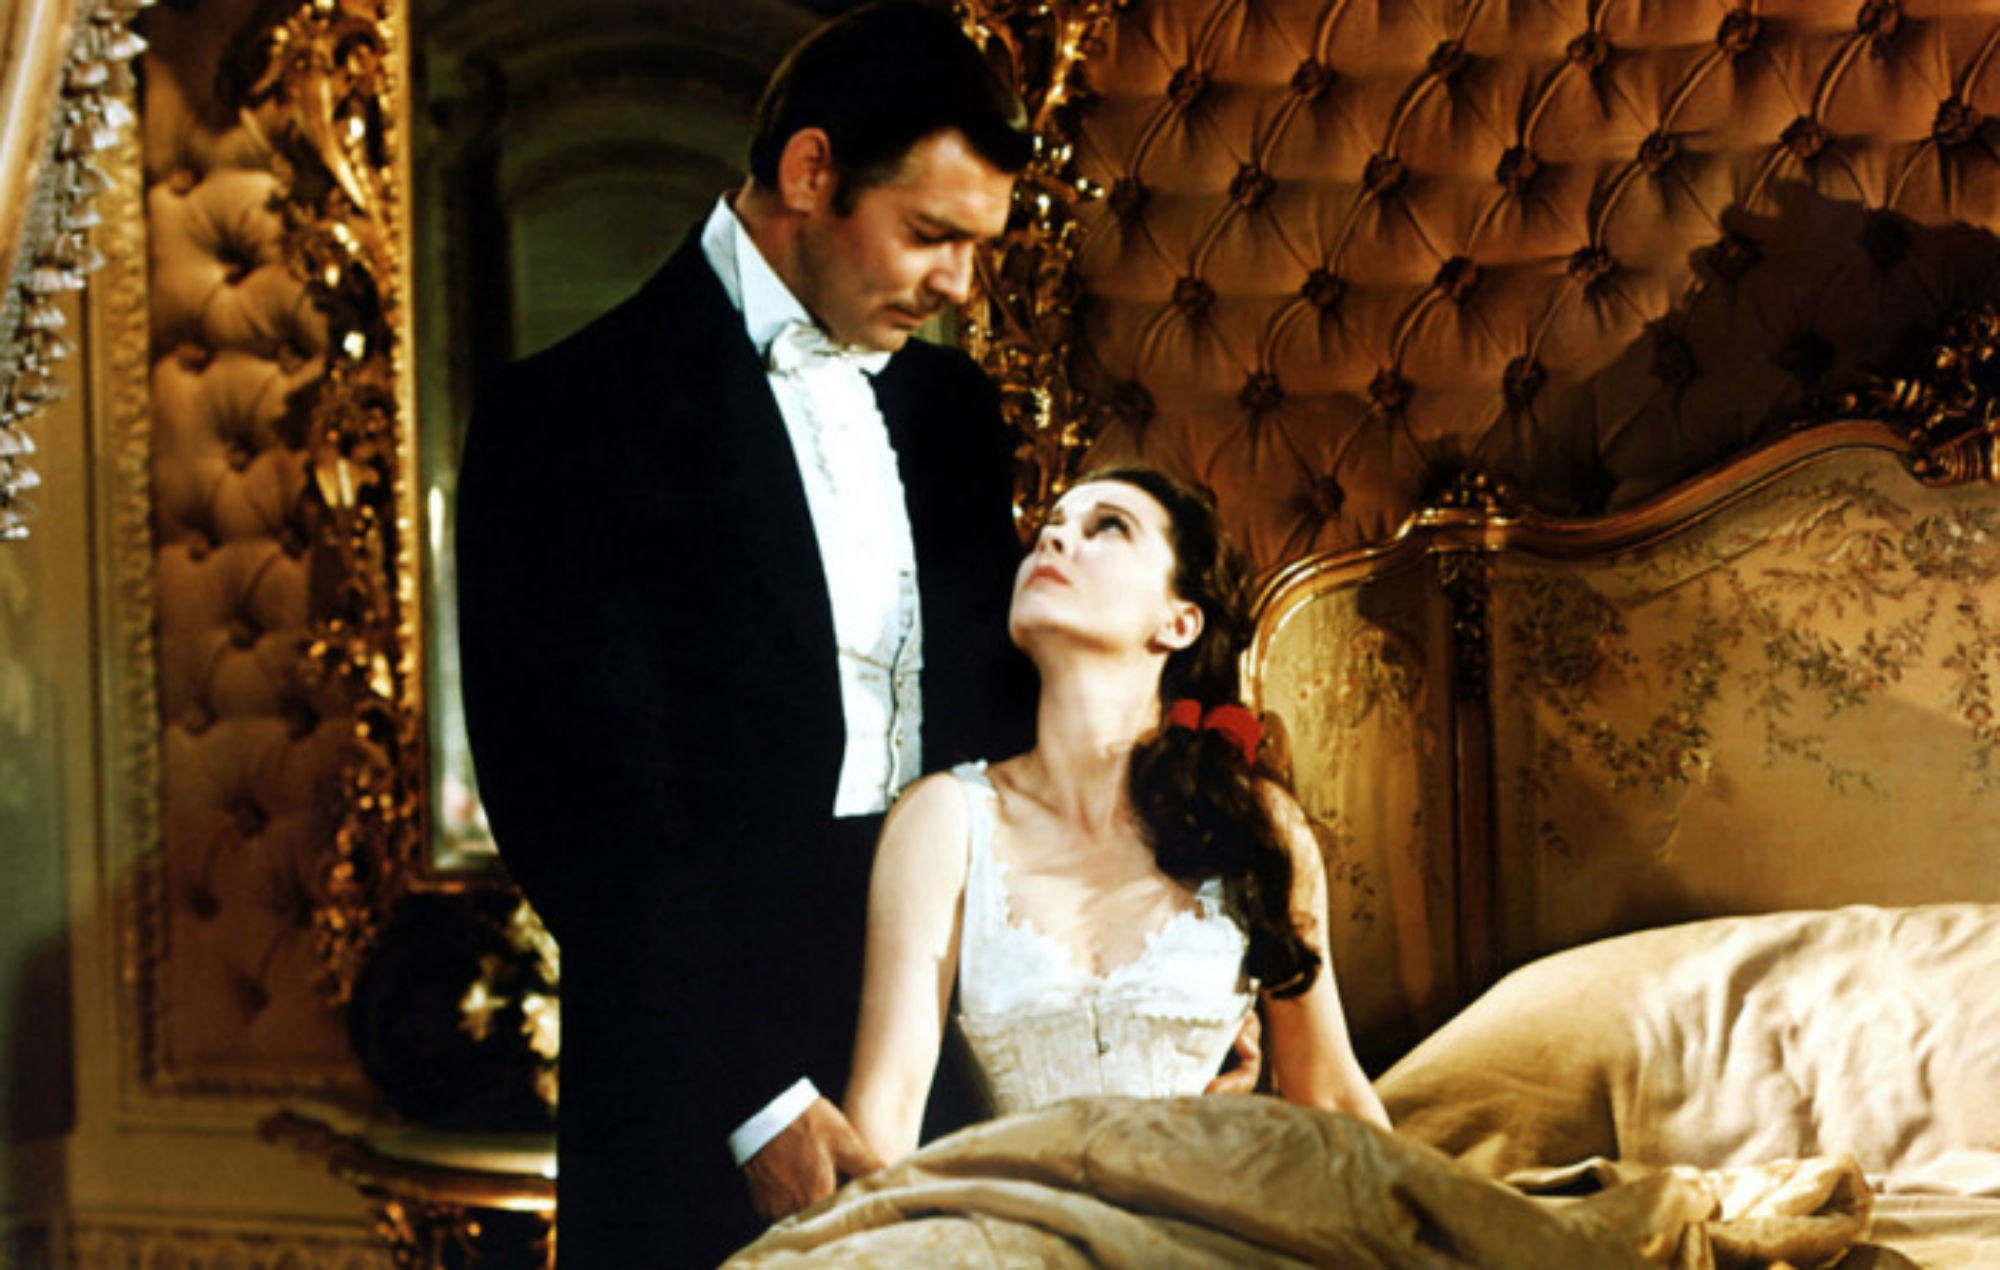 'Gone With The Wind' speedy pulled from HBO Max 2